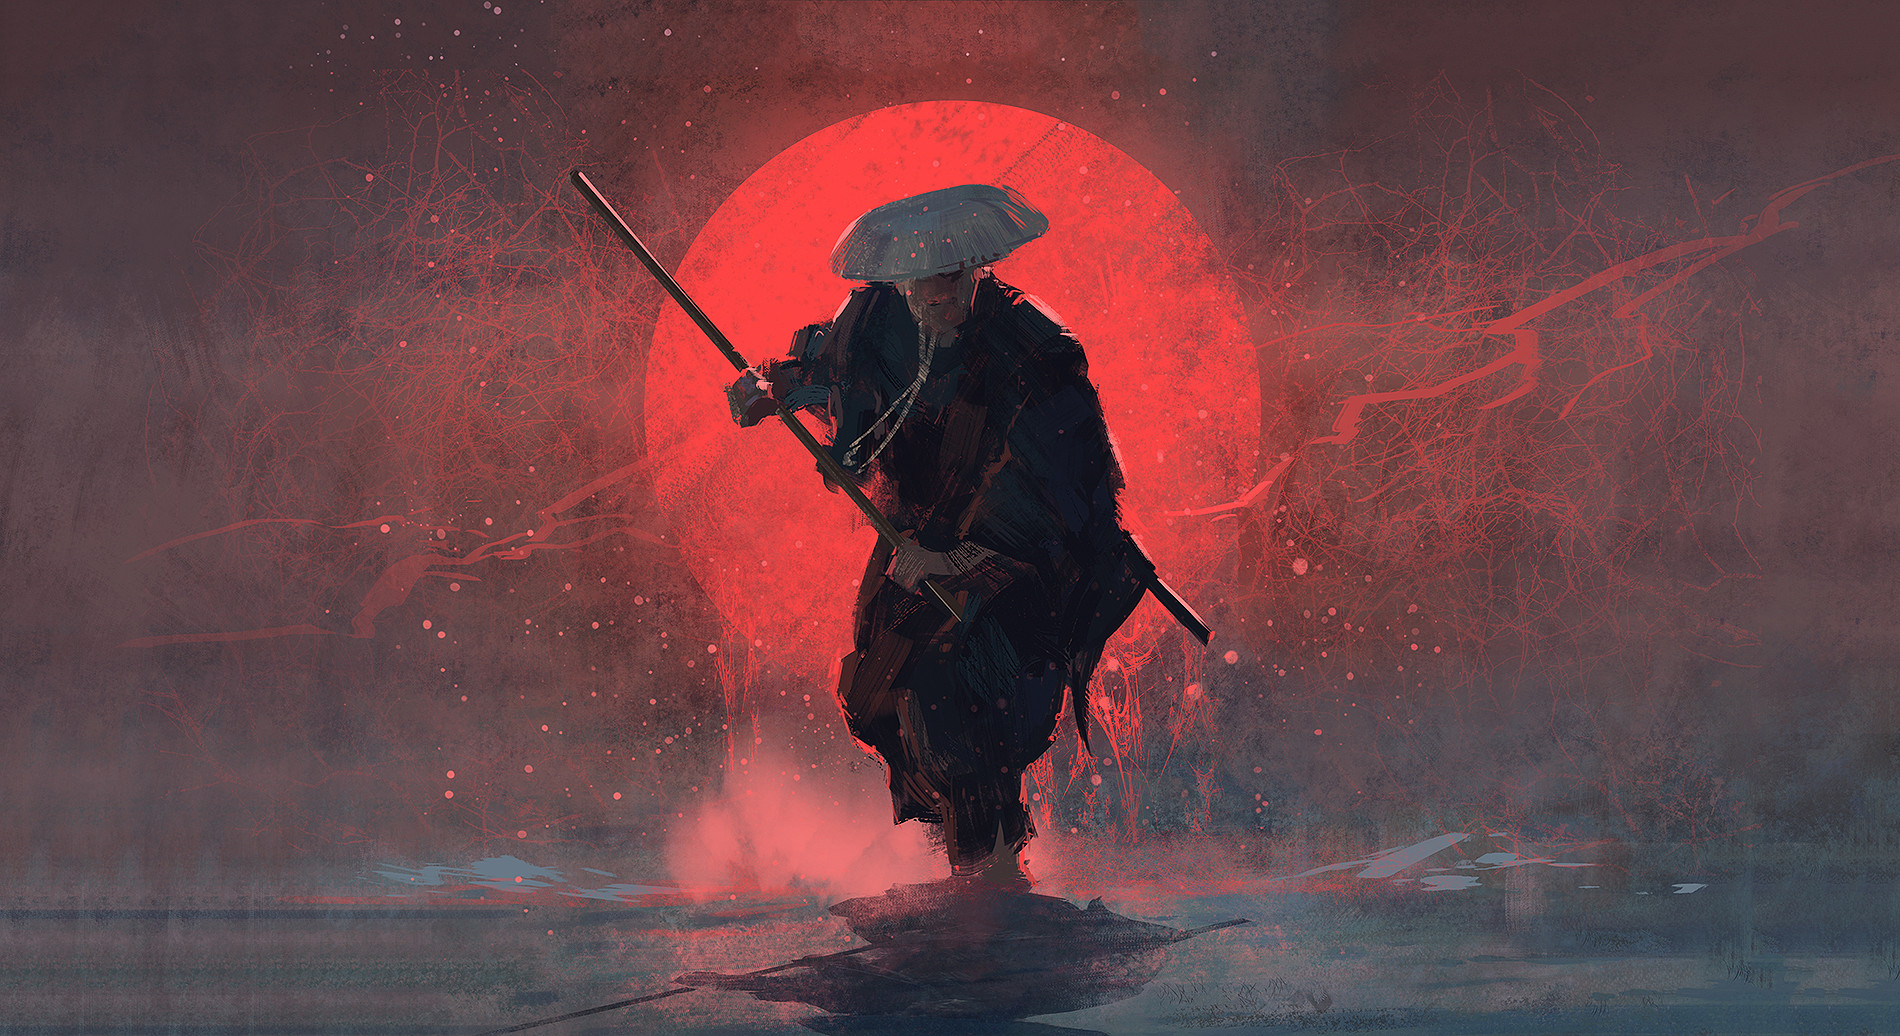 Joakim Ericsson Samurai Digital Artwork Wallpaper by crenk